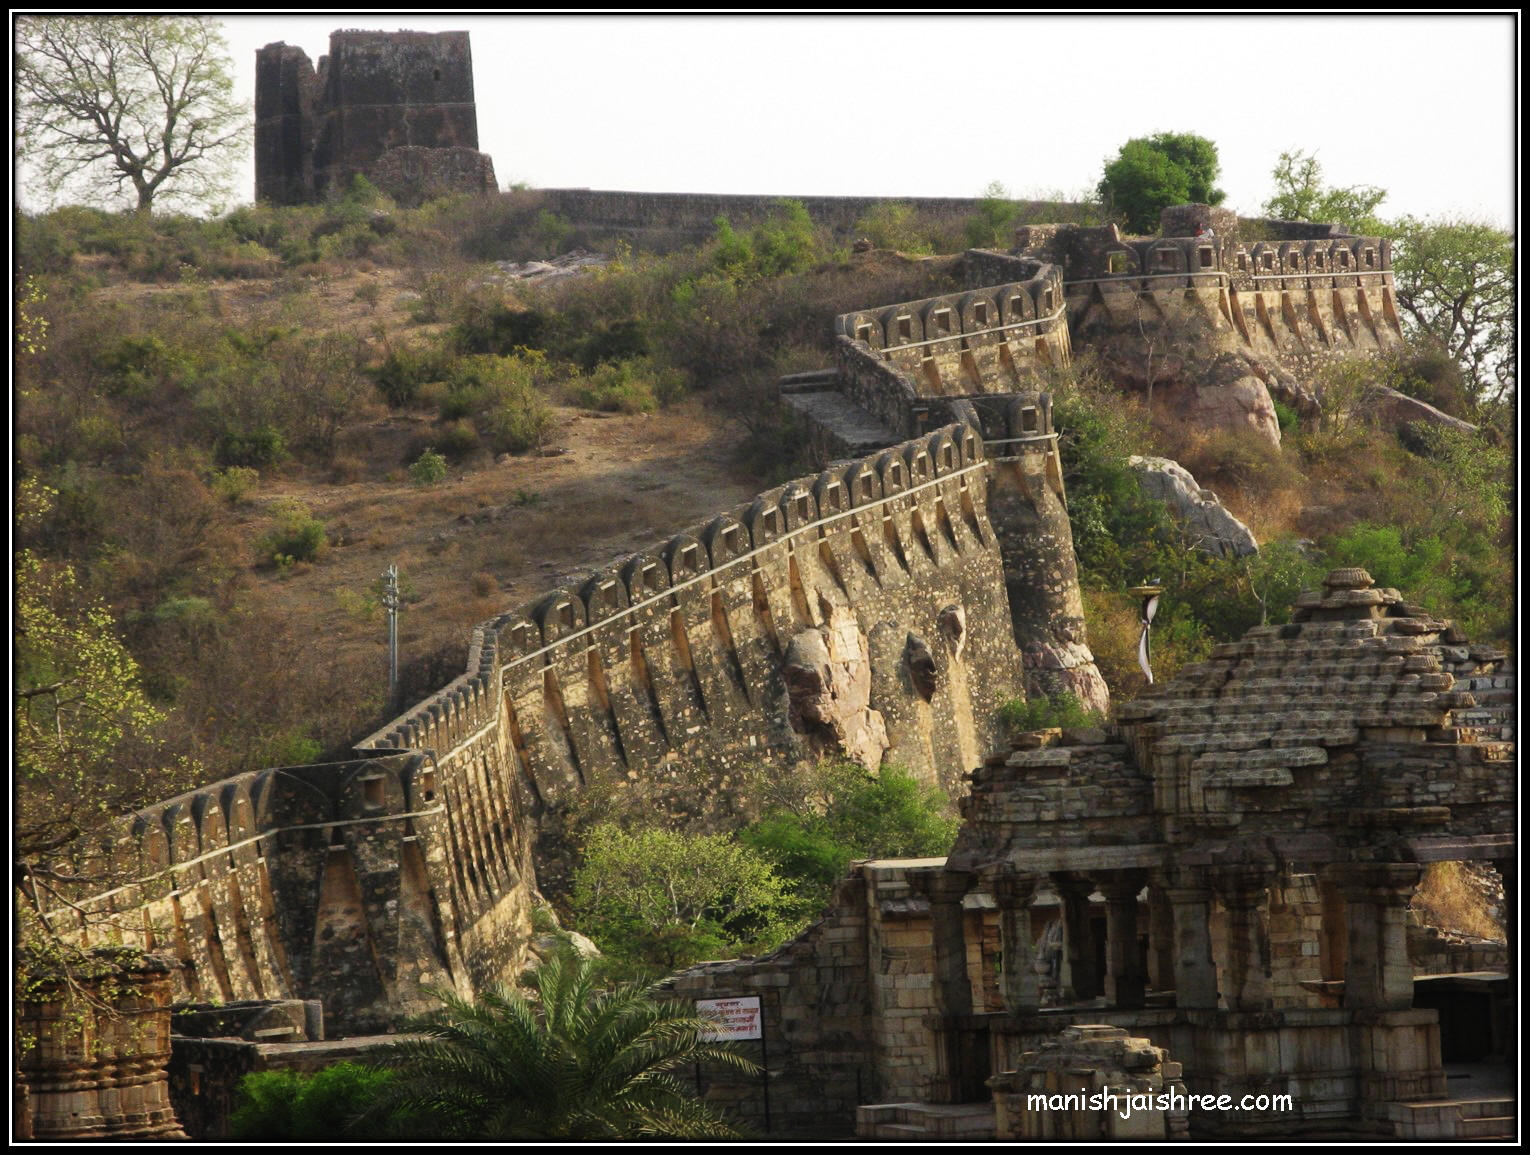 The Chittorgarh Fort